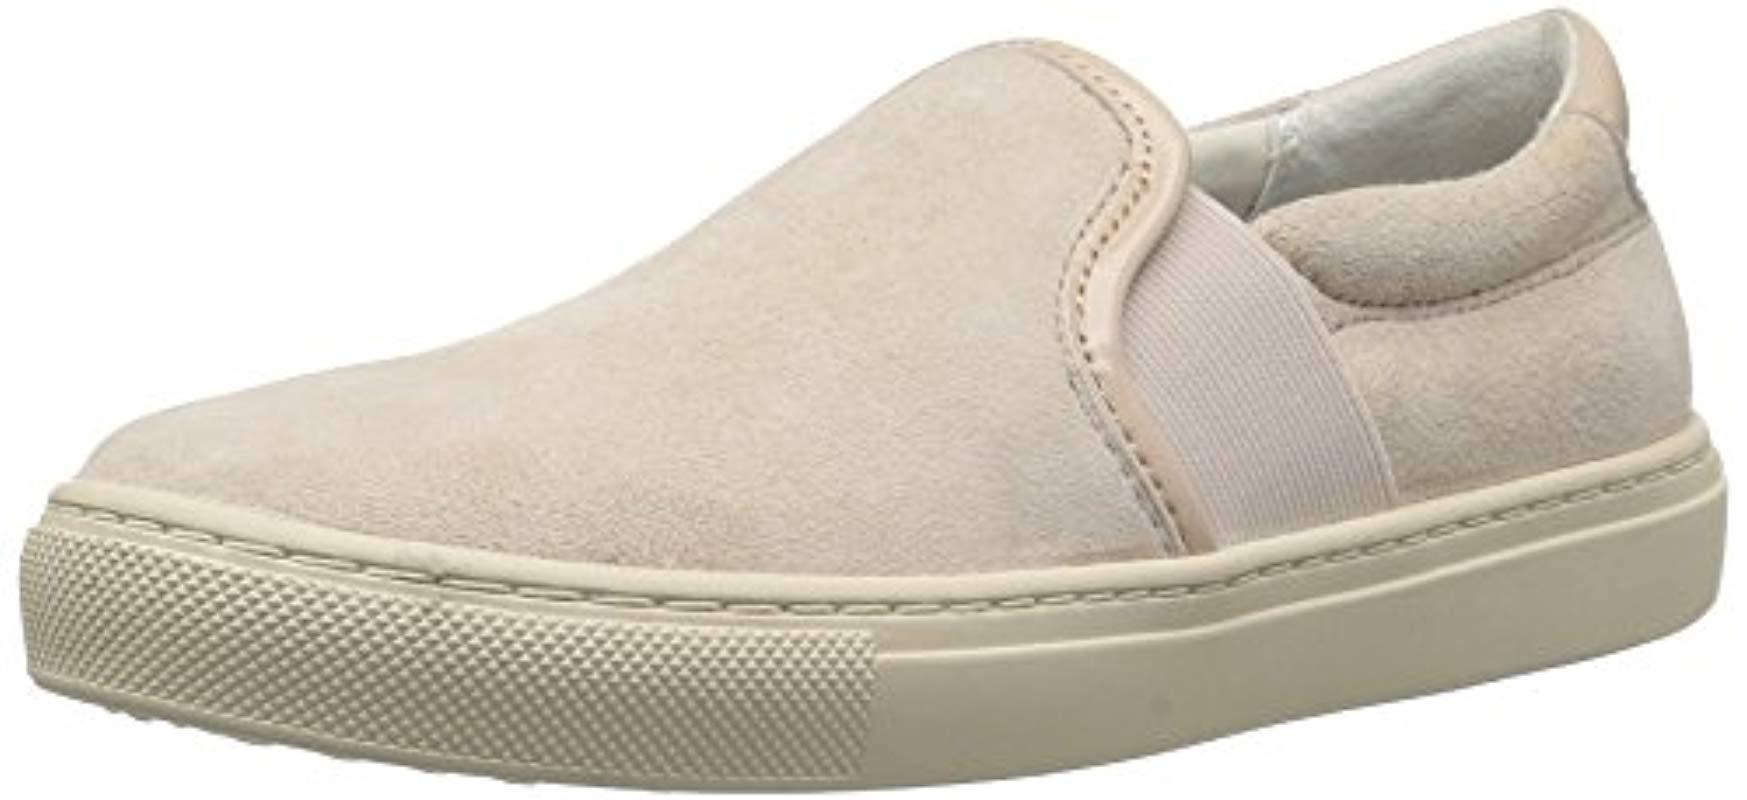 ad340a60ce Geox D Trysure B Low-top Sneakers in Natural - Lyst